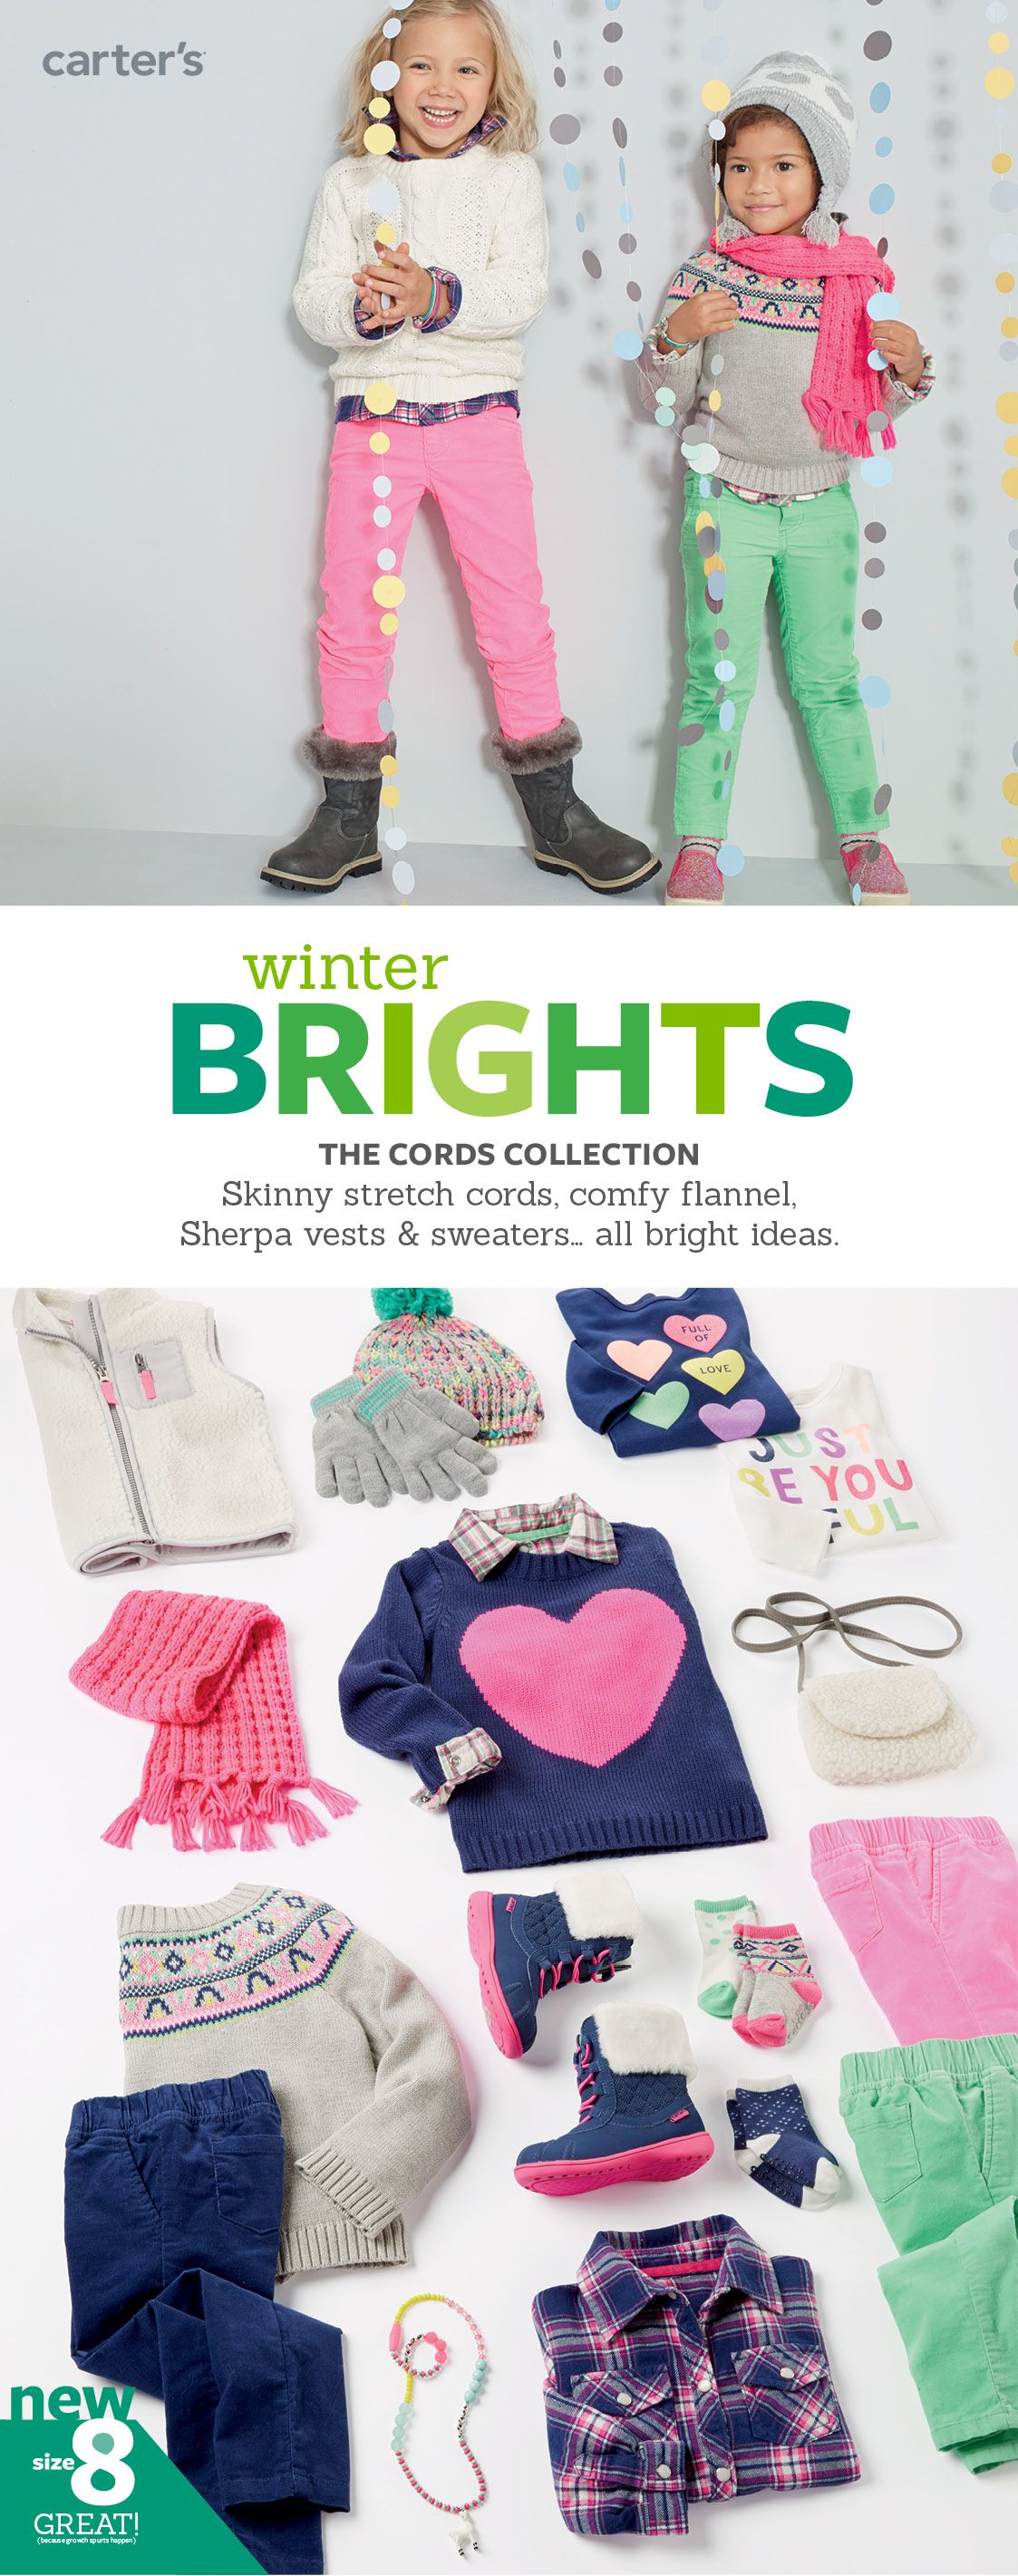 Brighten up! Stretchy cords, fun sweaters + cozy fleece for easy winter style.